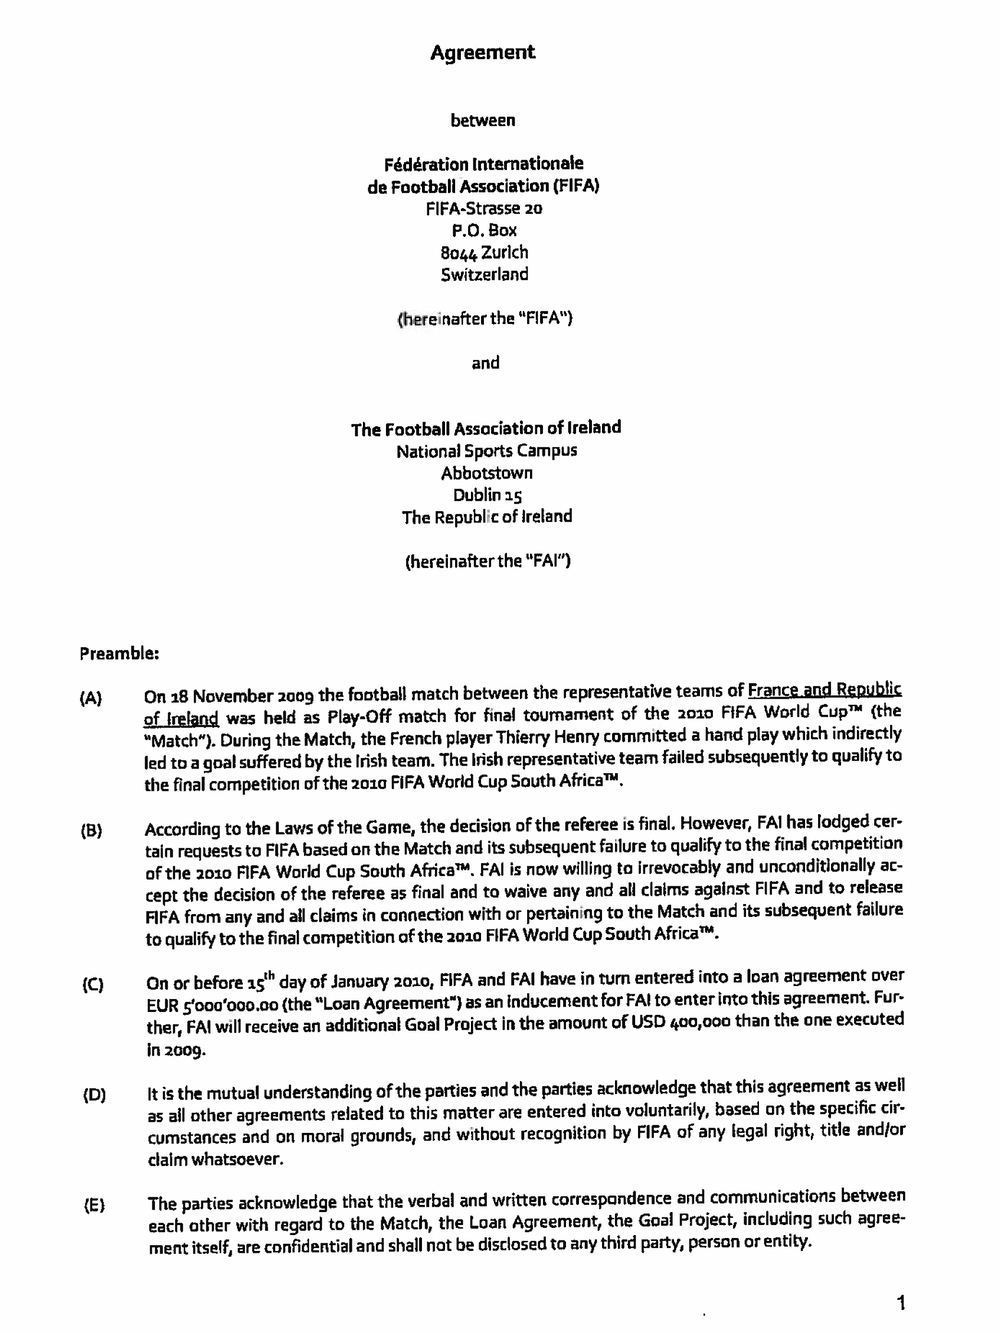 The first page of a four-page agreement between FIFA and Ireland's soccer association outlines the terms of a 5 million euro payment.